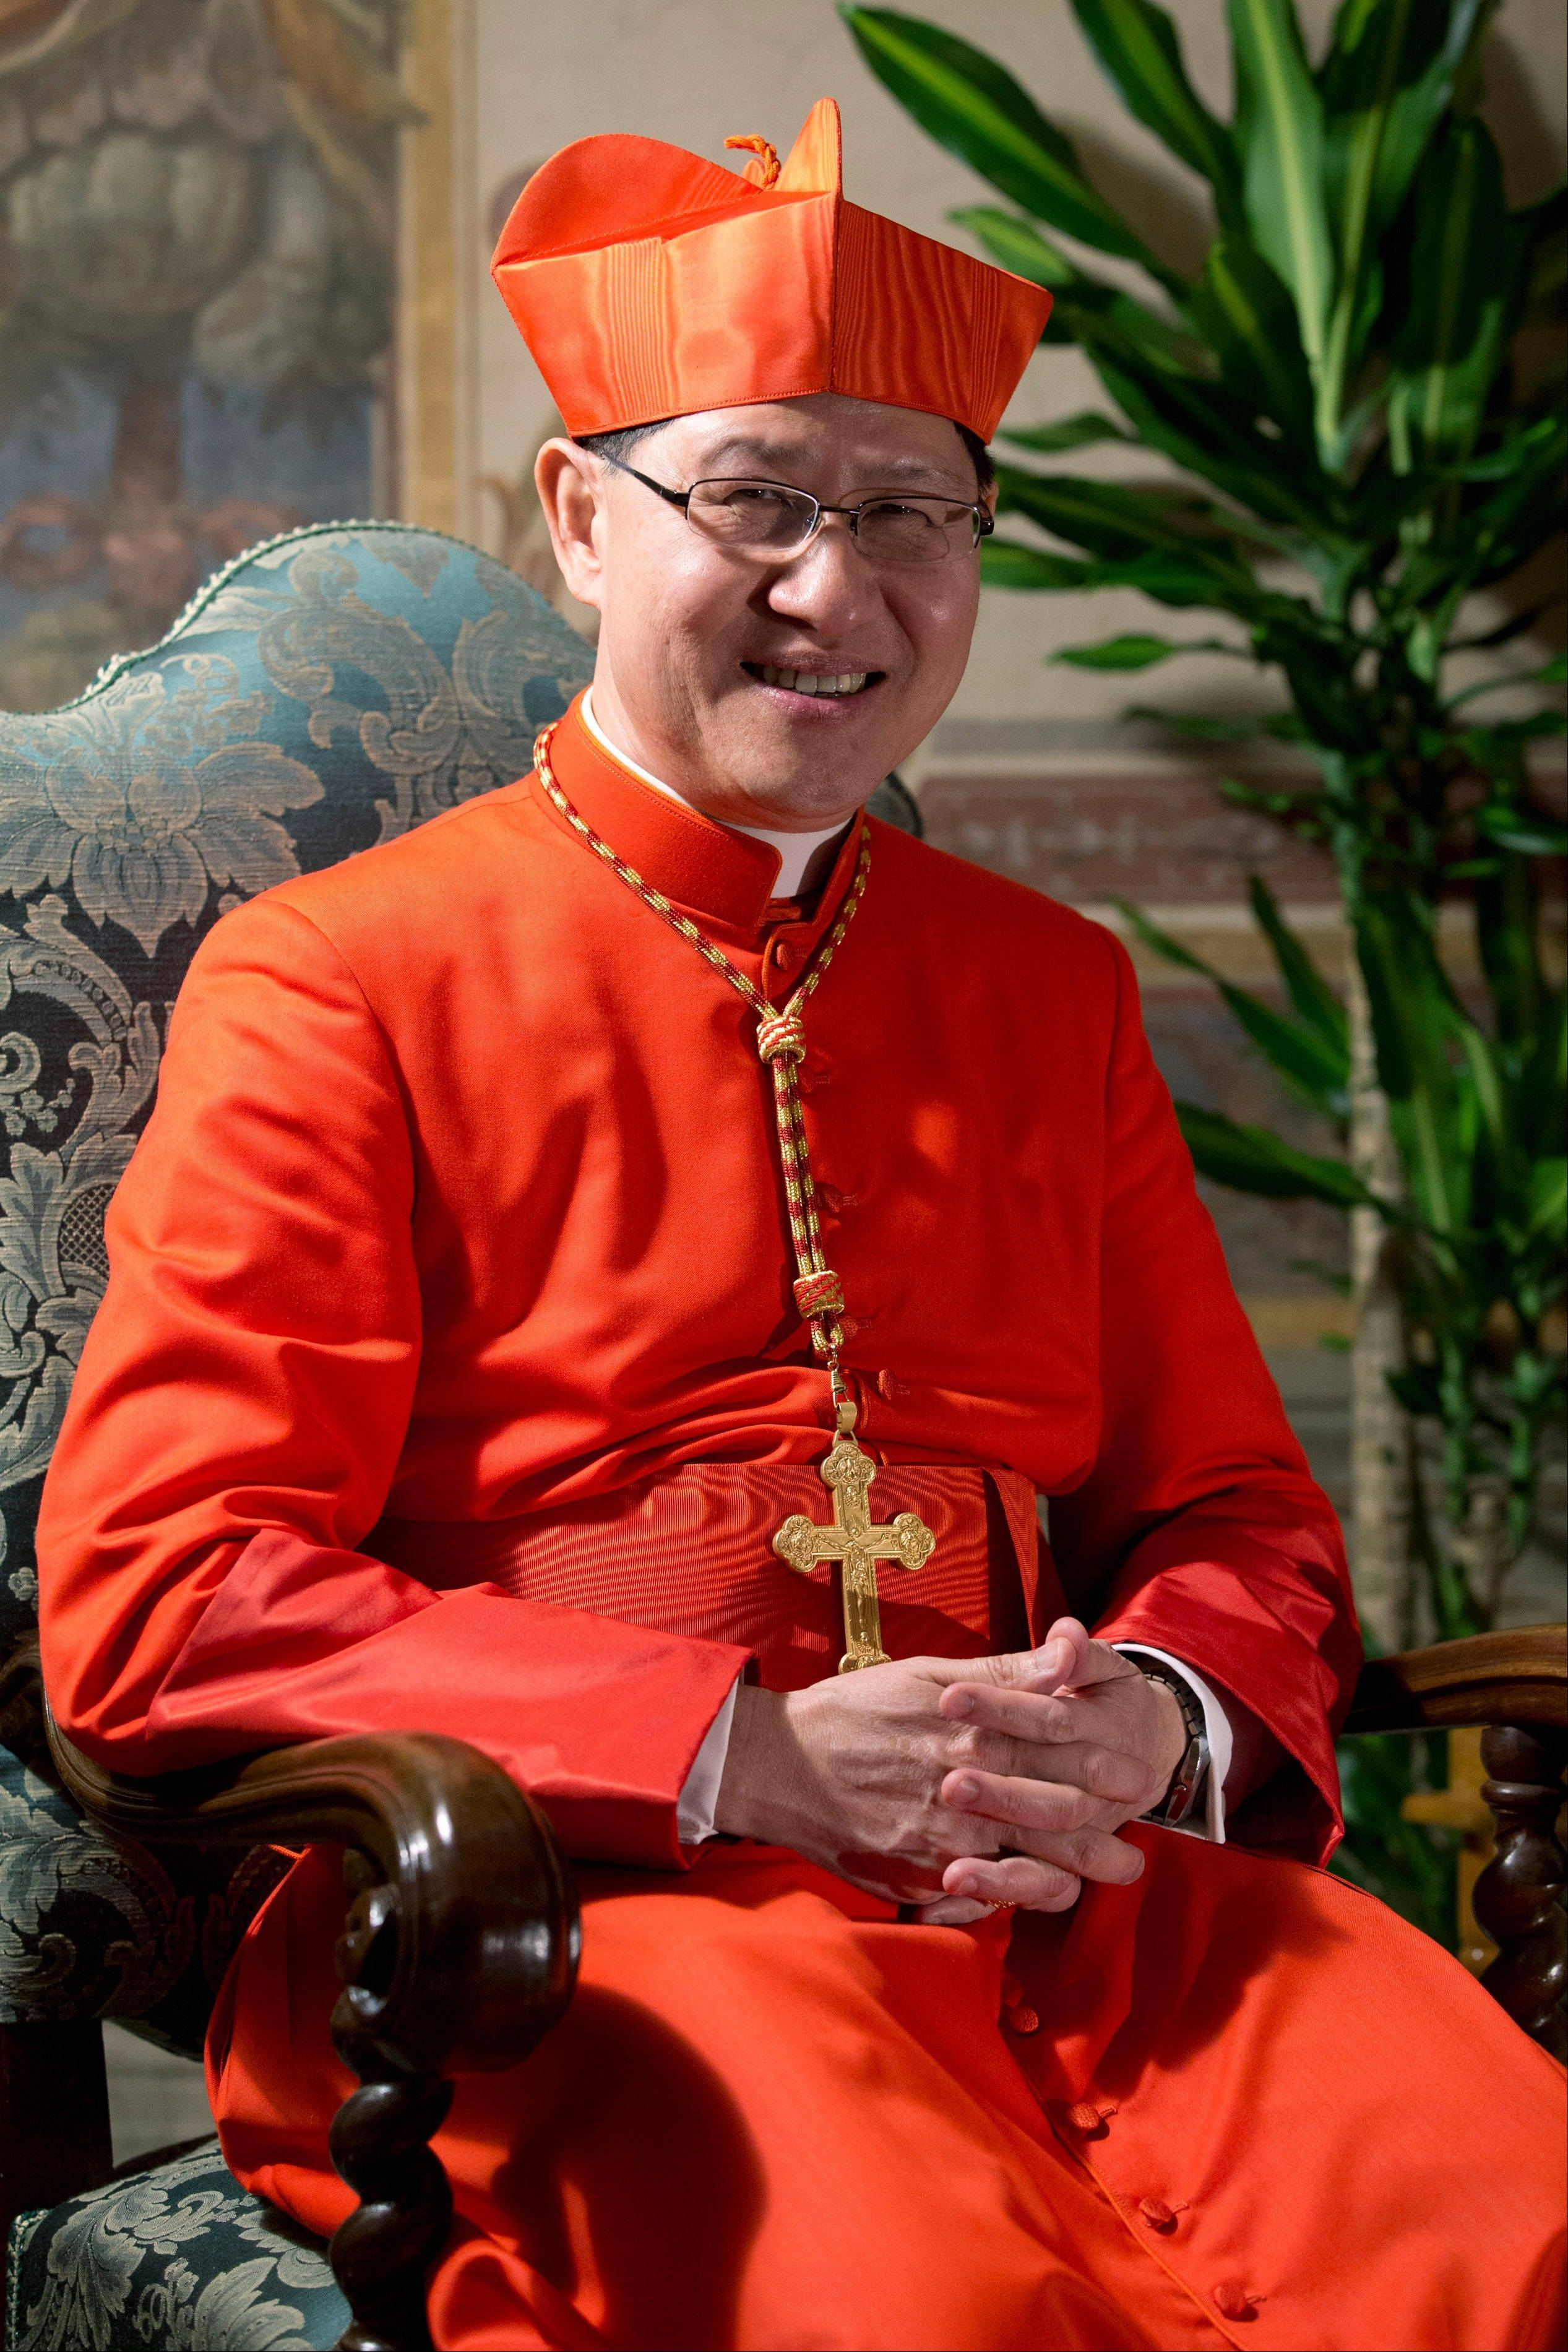 Philippine Cardinal Luis Antonio Tagle�s best response against the tide of secularism, clergy sex abuse scandals and rival-faith competition could be his reputation for humility. His compassion for the poor and unassuming ways have impressed followers in his homeland, Asia�s largest Catholic nation, and church leaders in the Vatican.